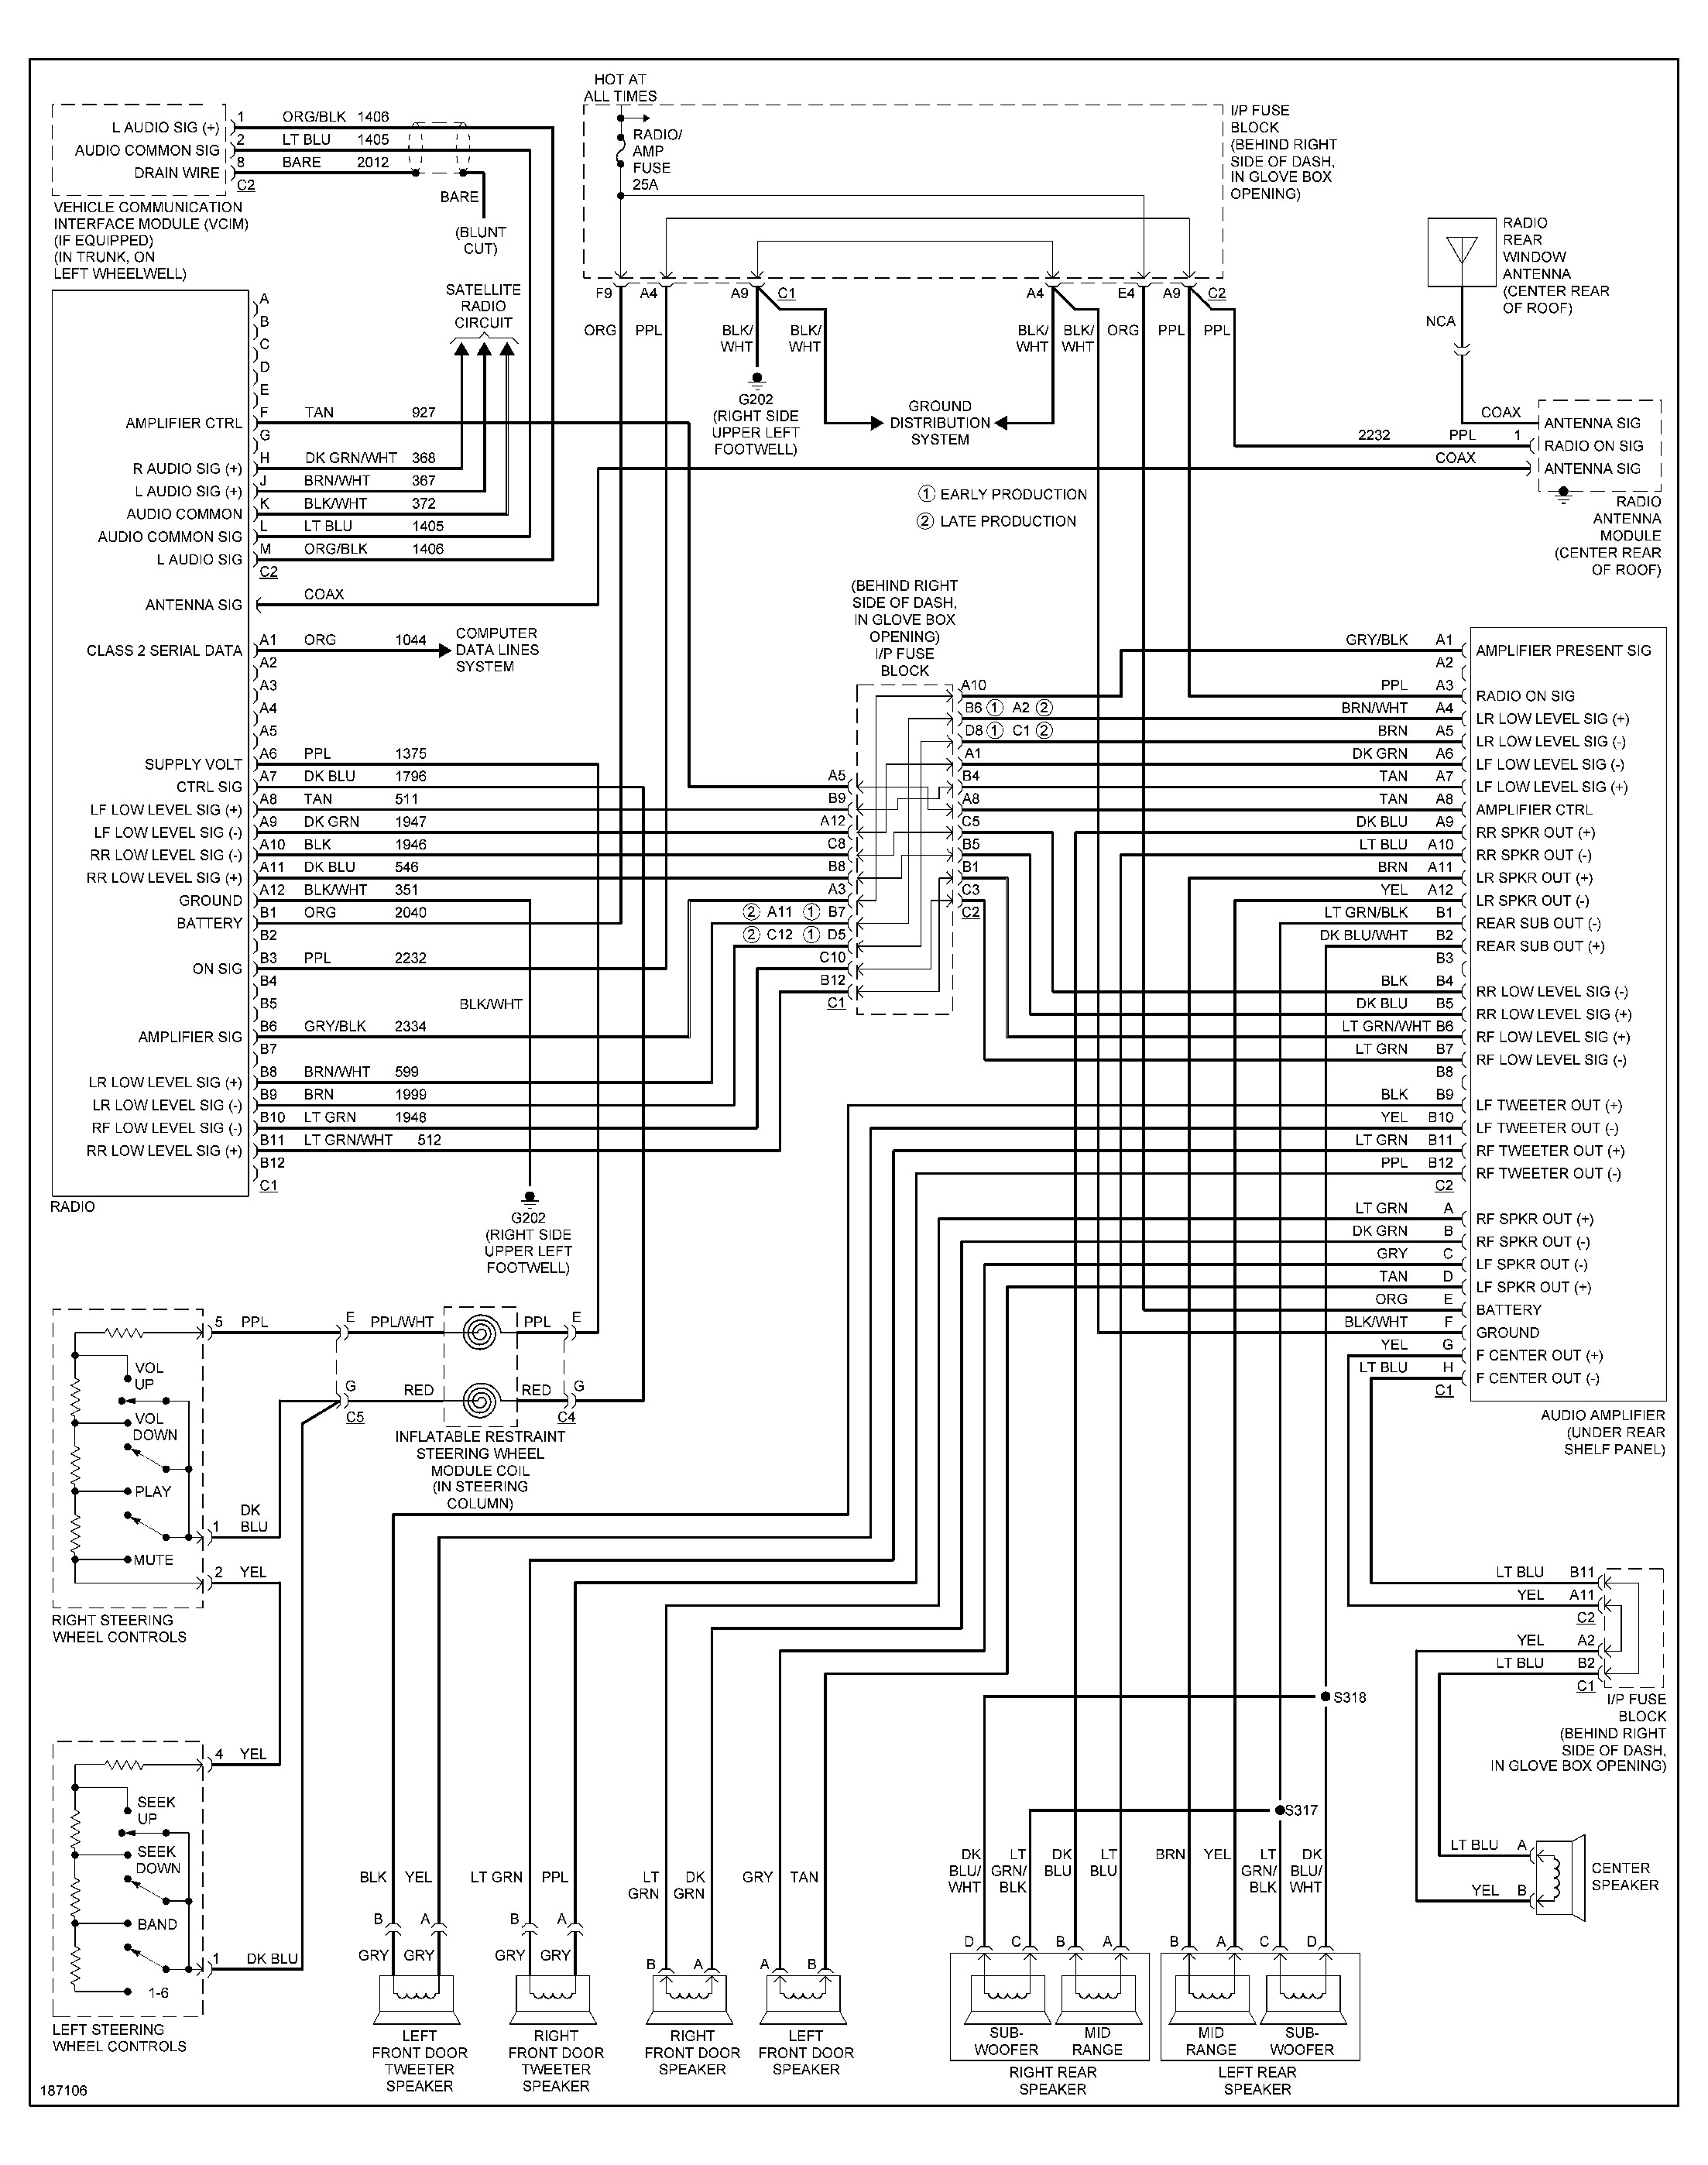 2002 Pontiac Sunfire Radio Wiring Diagram